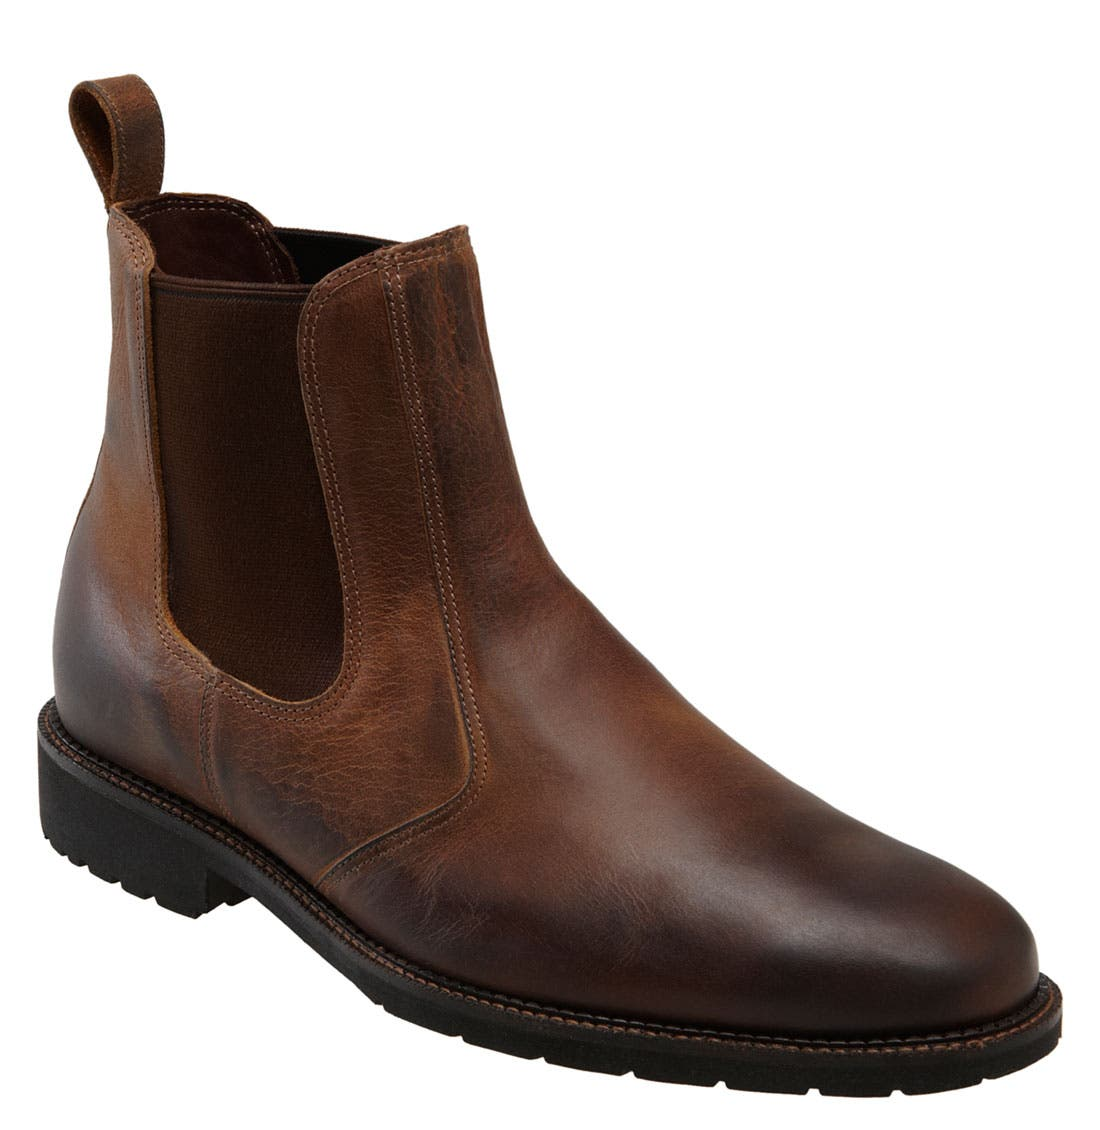 Alternate Image 1 Selected - Neil M 'Portland' Boot (Online Only)